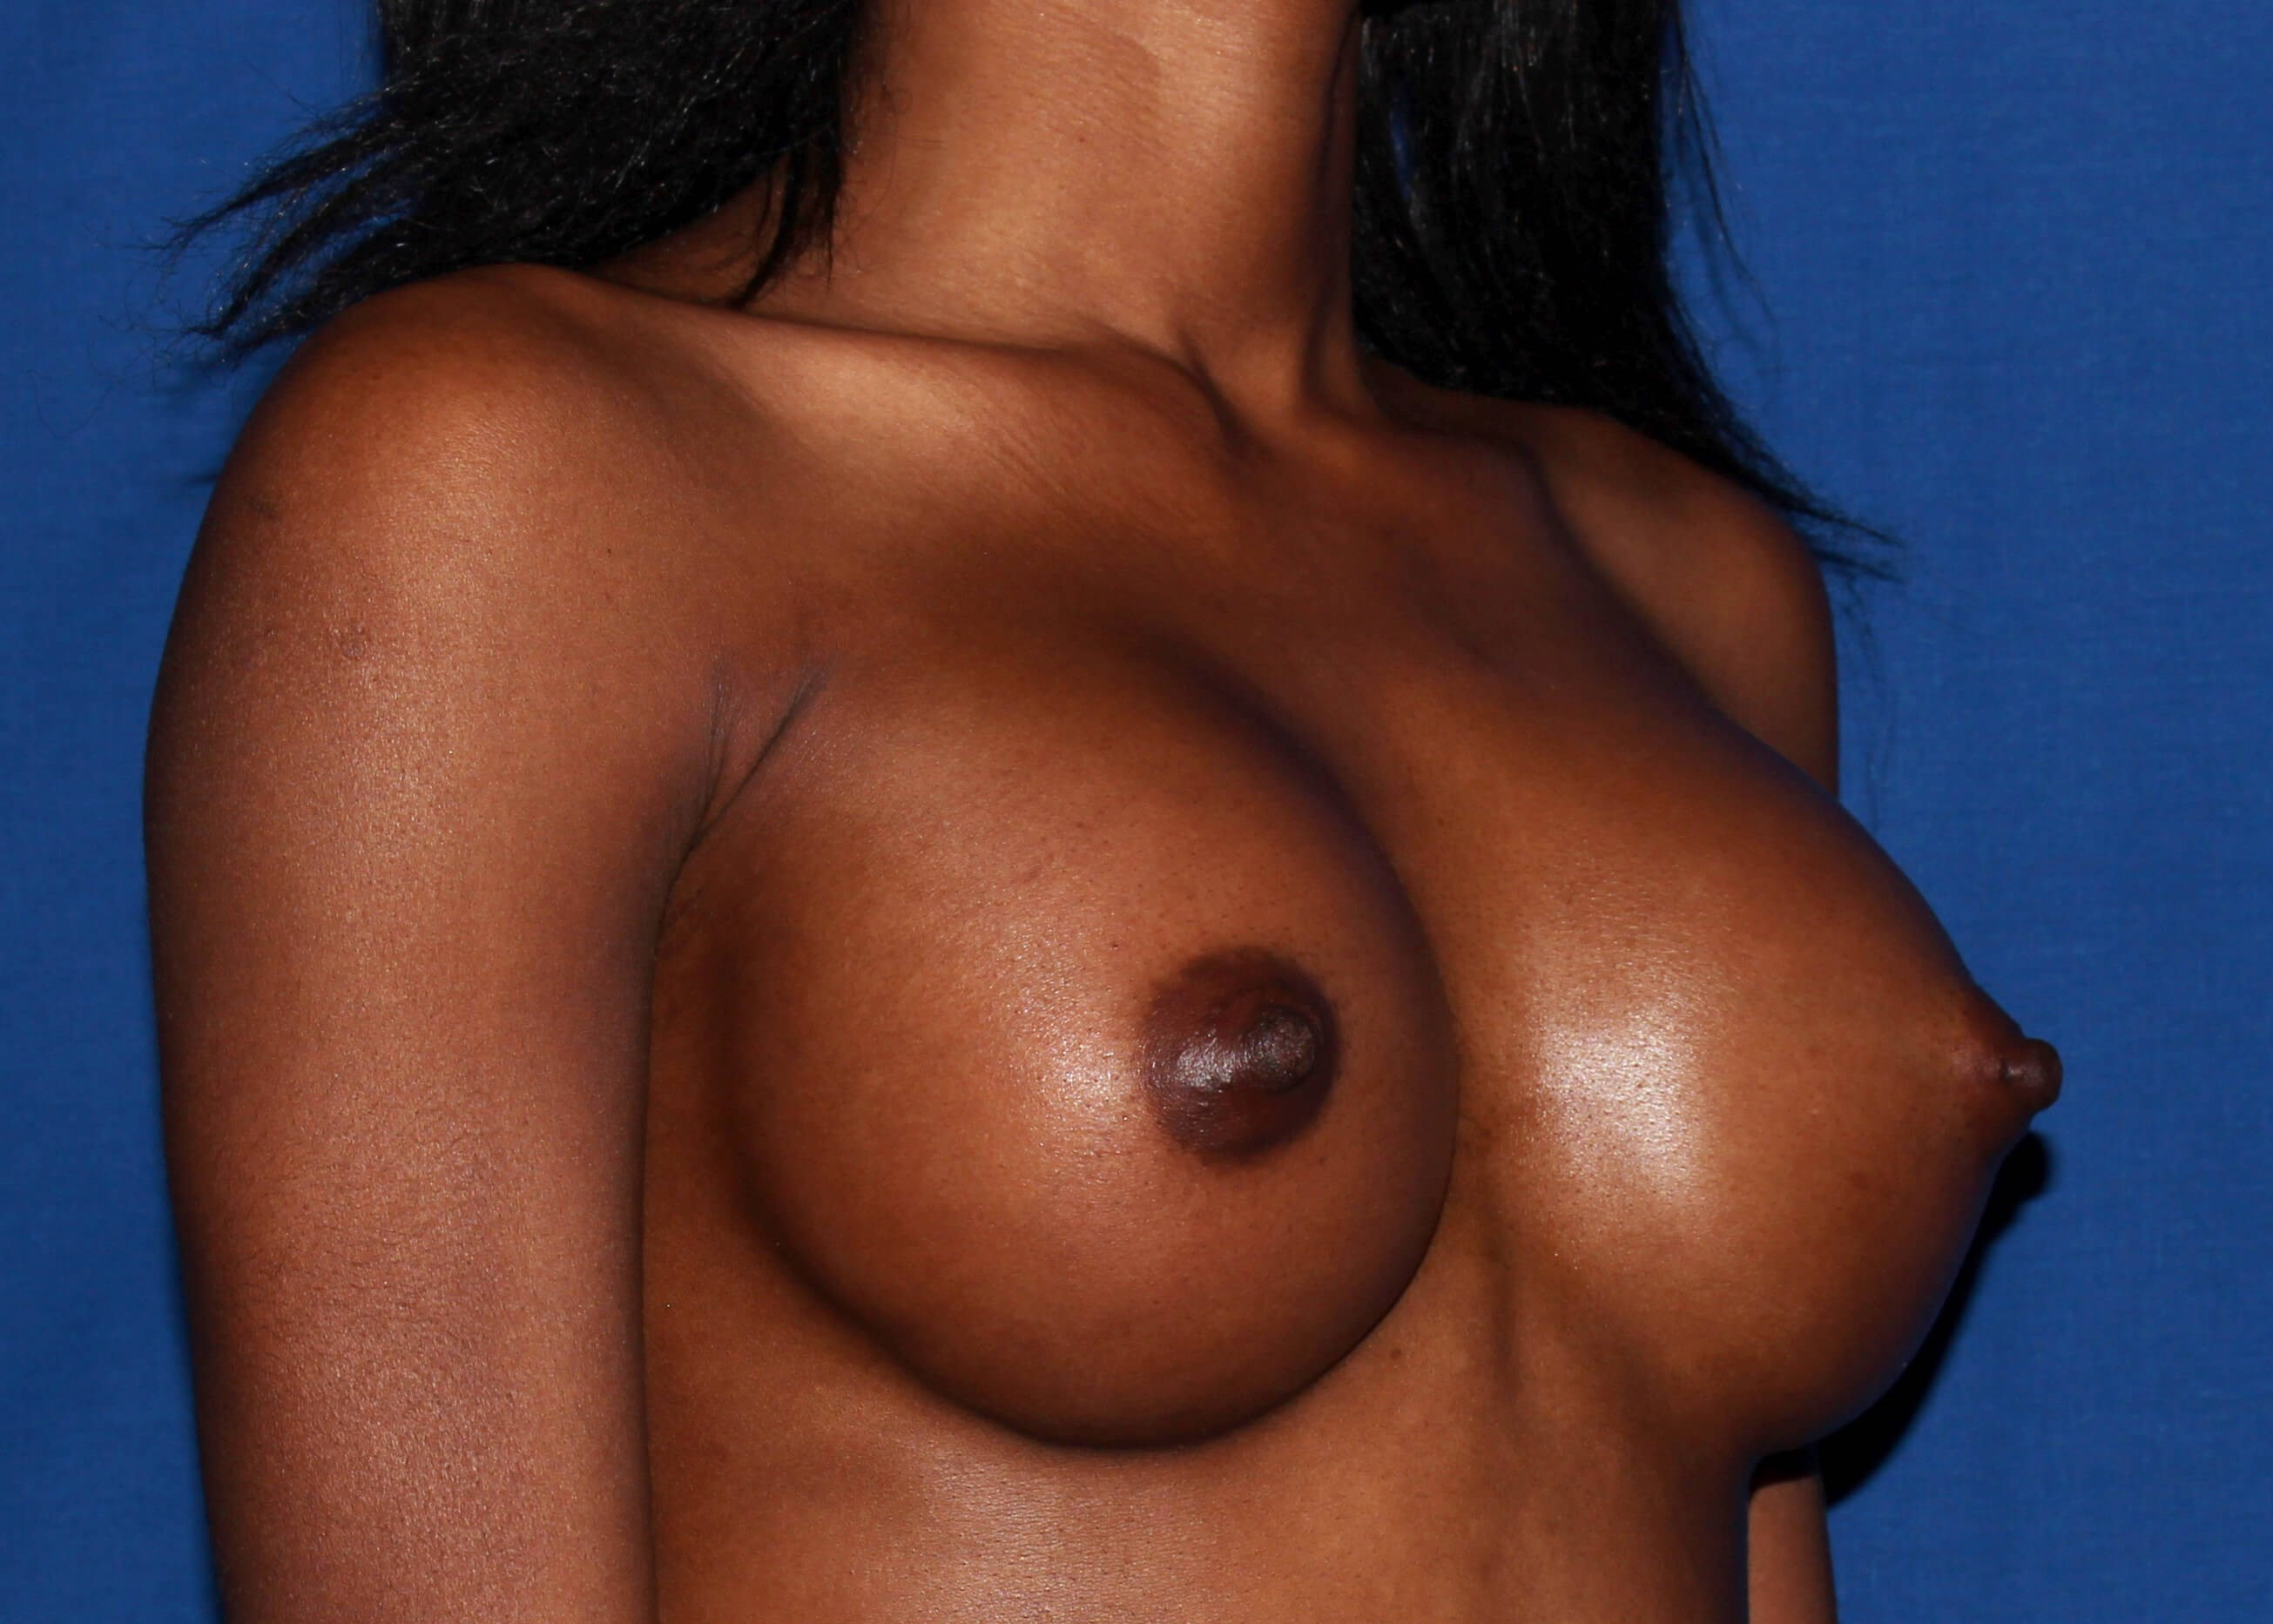 Breast Augmentation After Right Oblique View - Right Oblique View